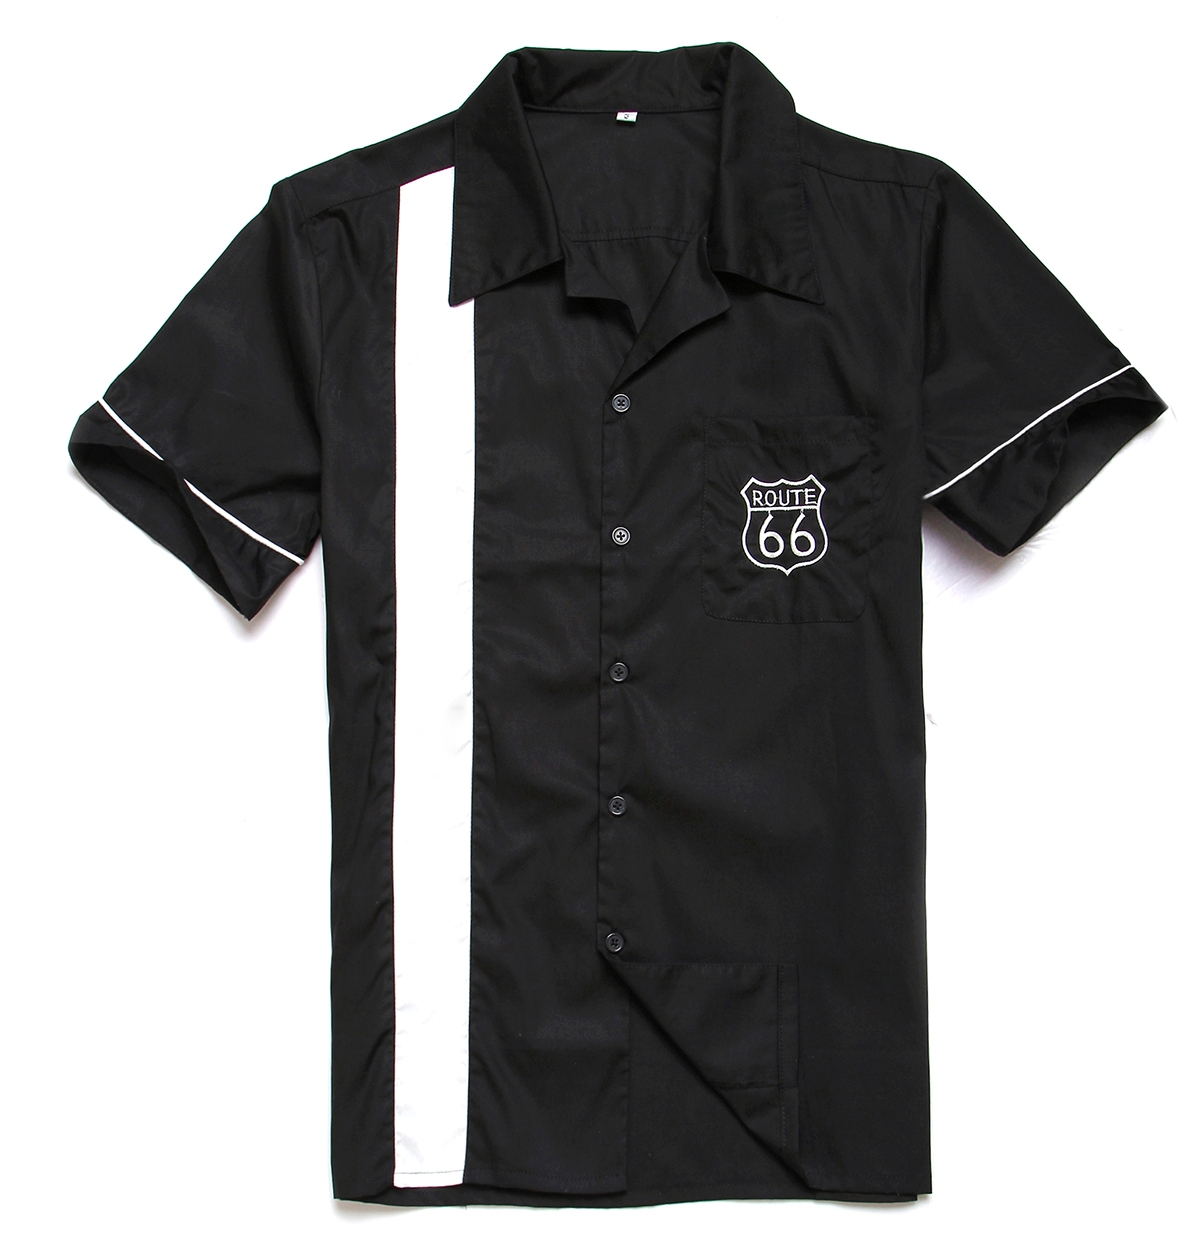 2015 new real camisa solid polo shirt mens fashion cool design short - Wholesale Clothing Short Sleeve Rockabilly 50s 60 S Clothing Men S Design Vintage Casual Rocknroll Shirt For Drop